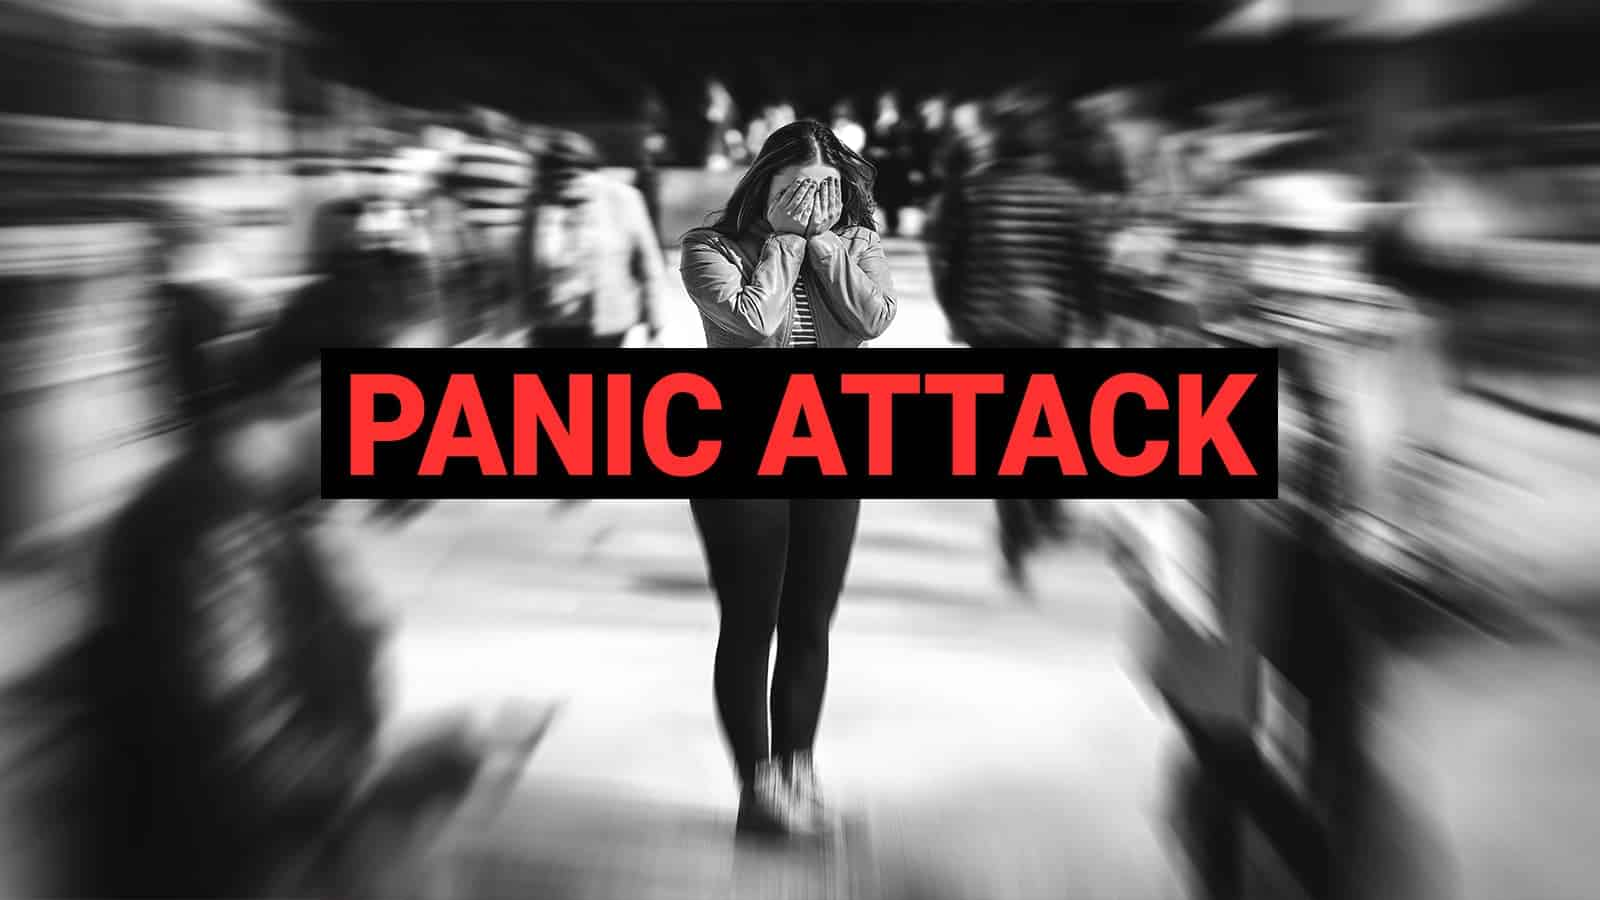 Want to prevent Panic Attacks? — Follow these steps!